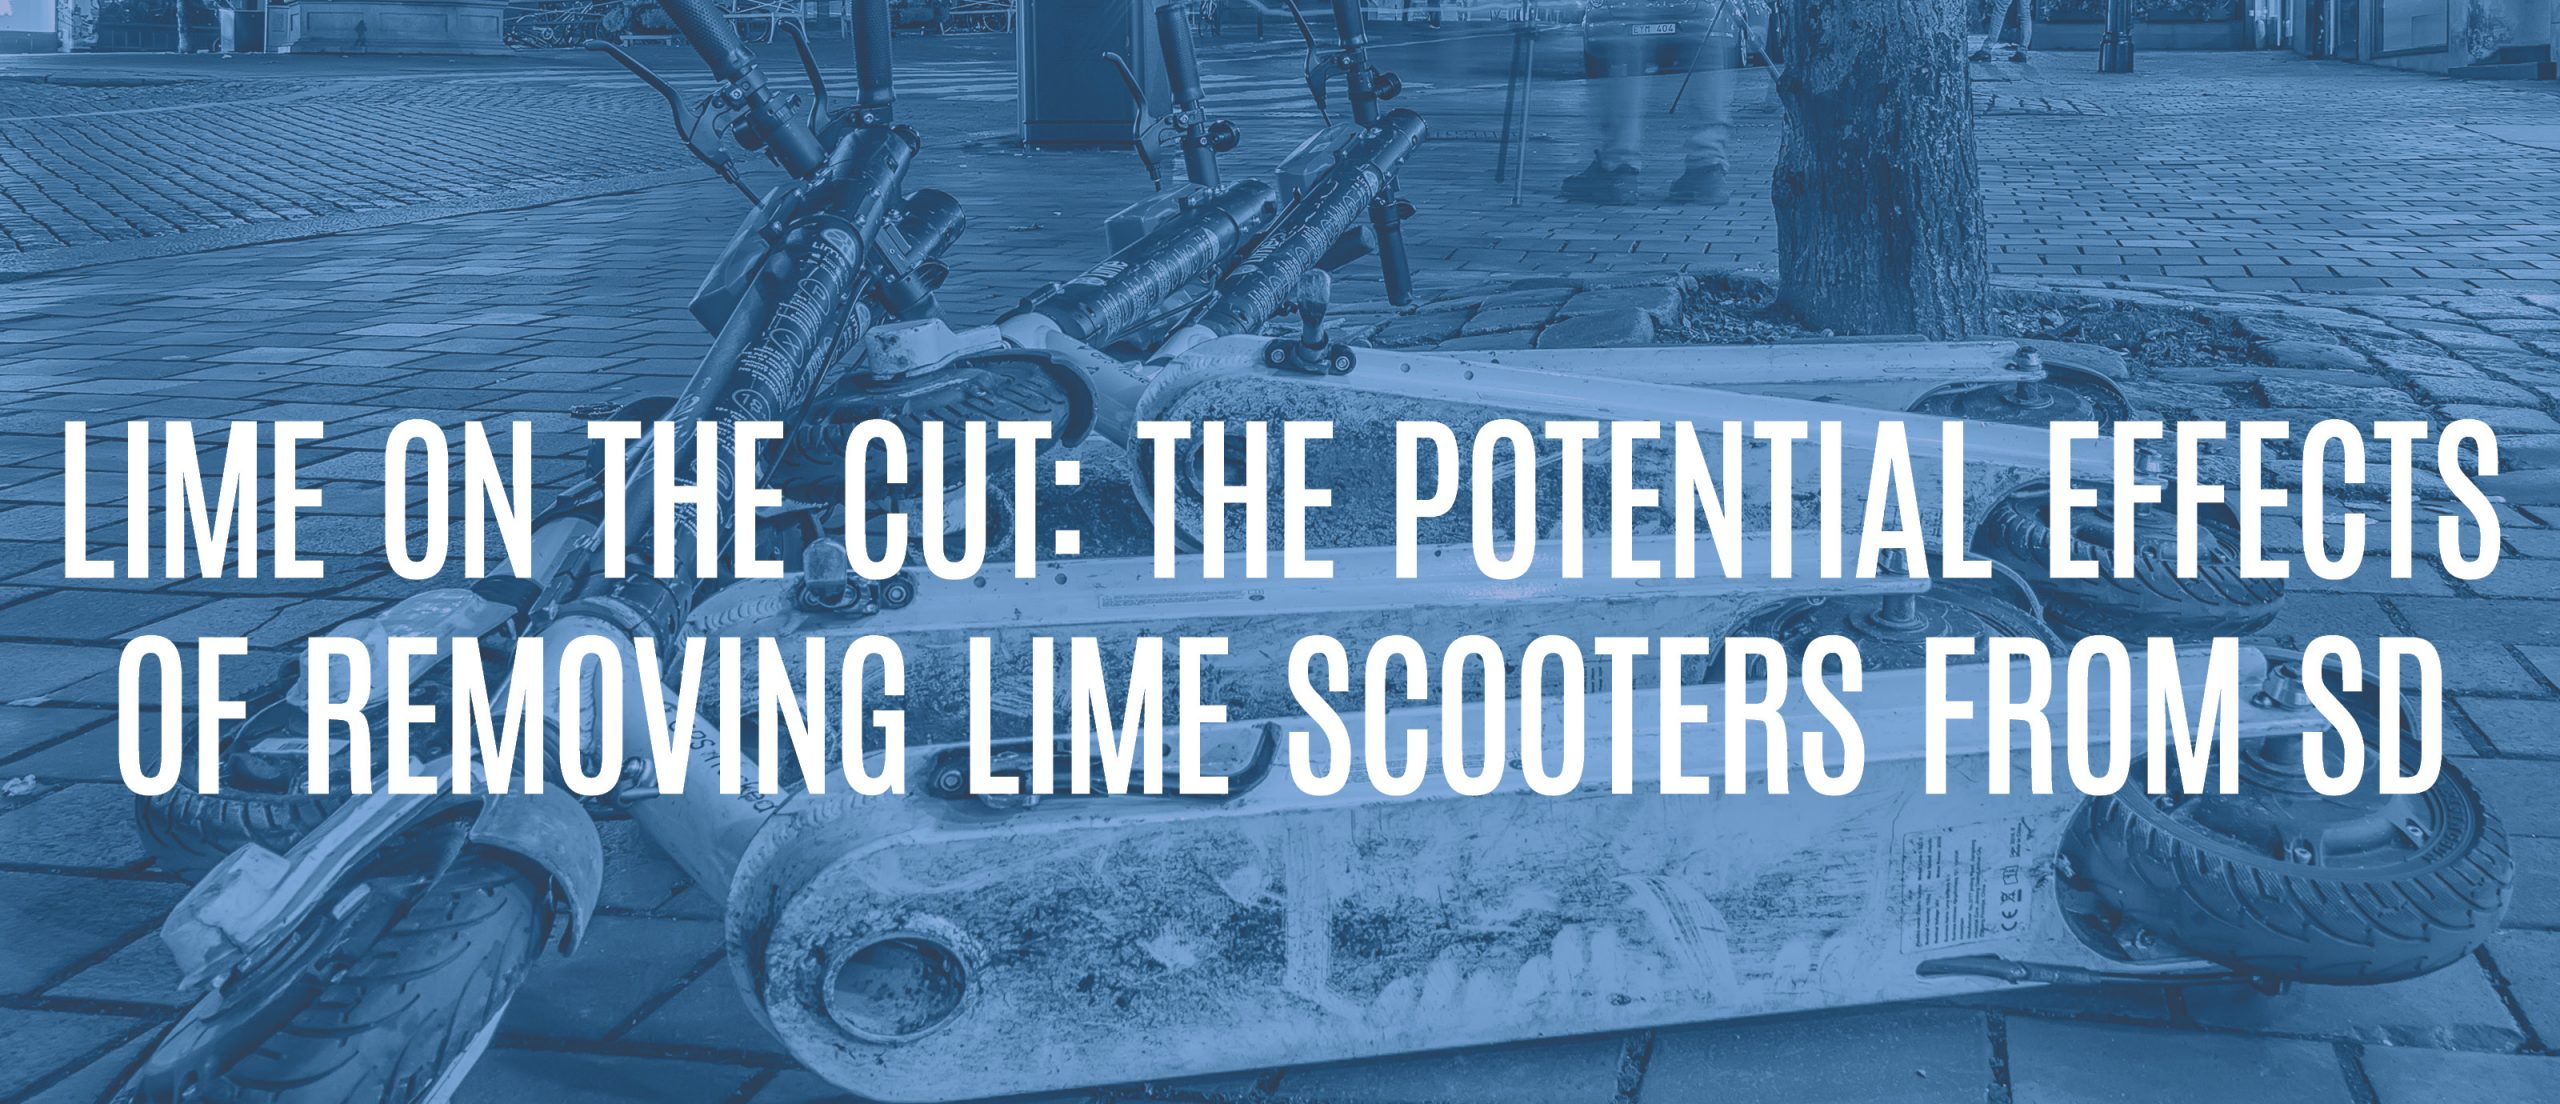 Blog title - Lime on the cut: the potential effects of removing lime scooters from San Diego